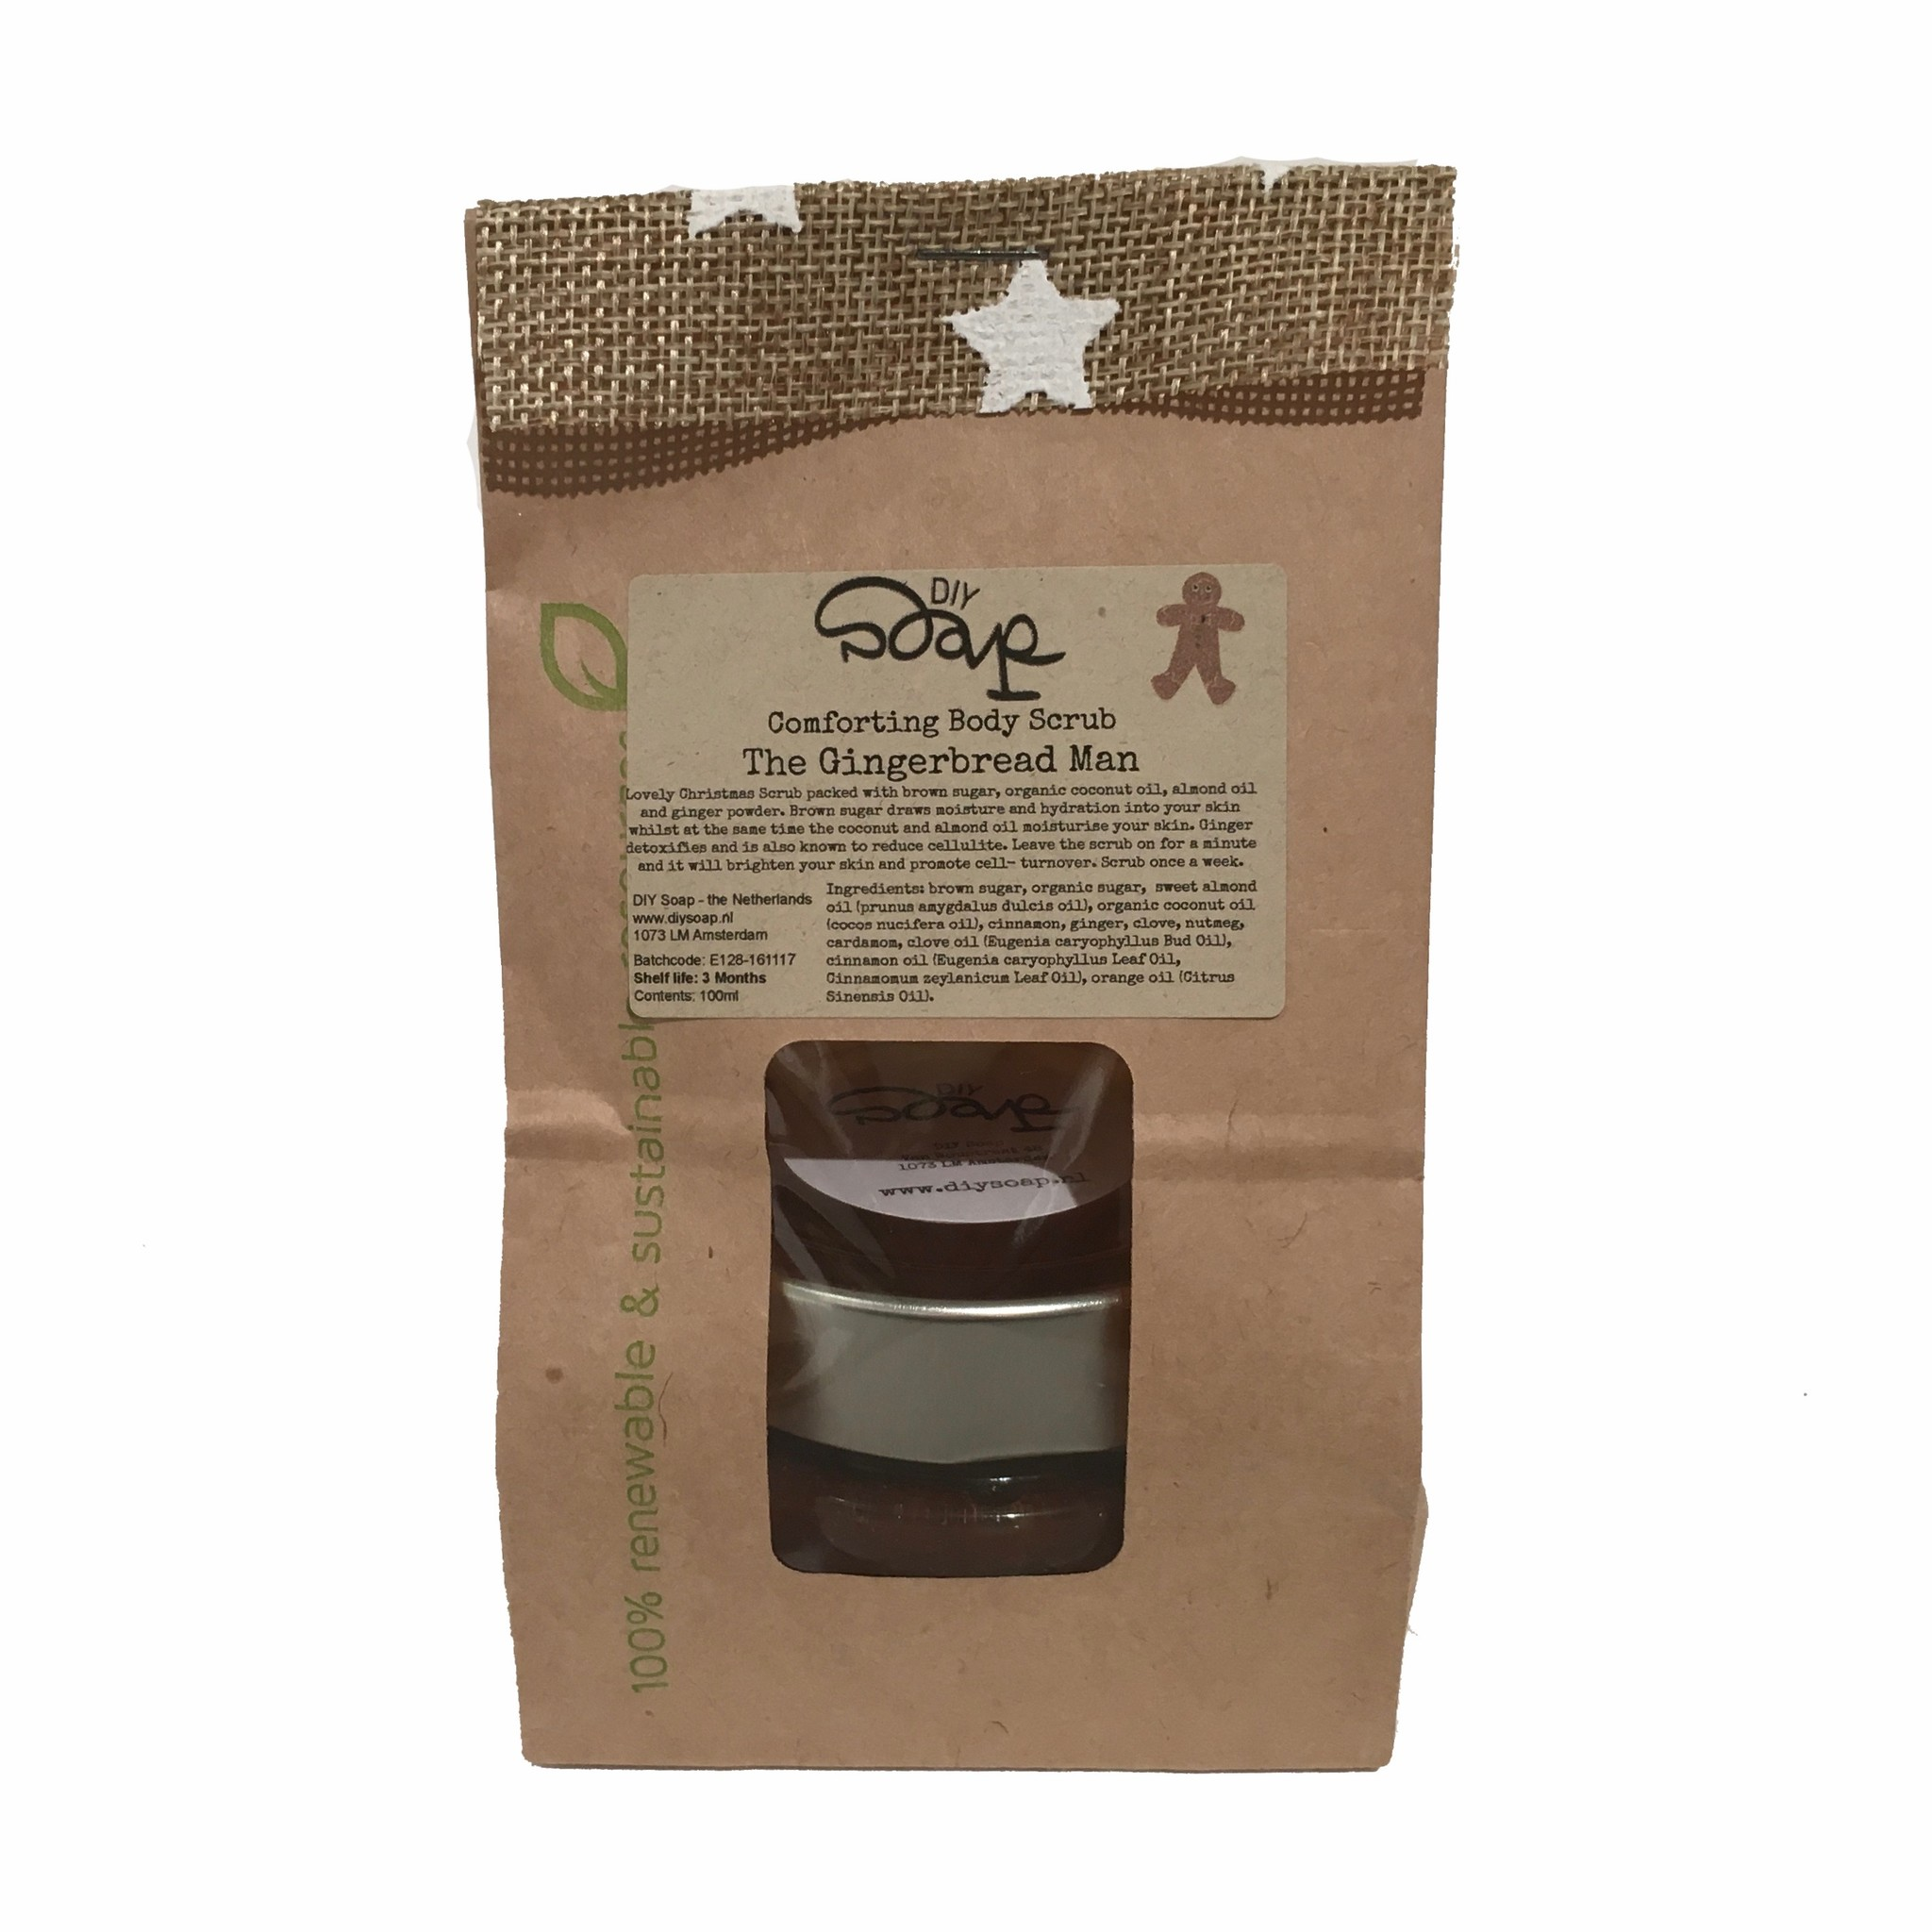 The Gingerbread Man Body Scrub